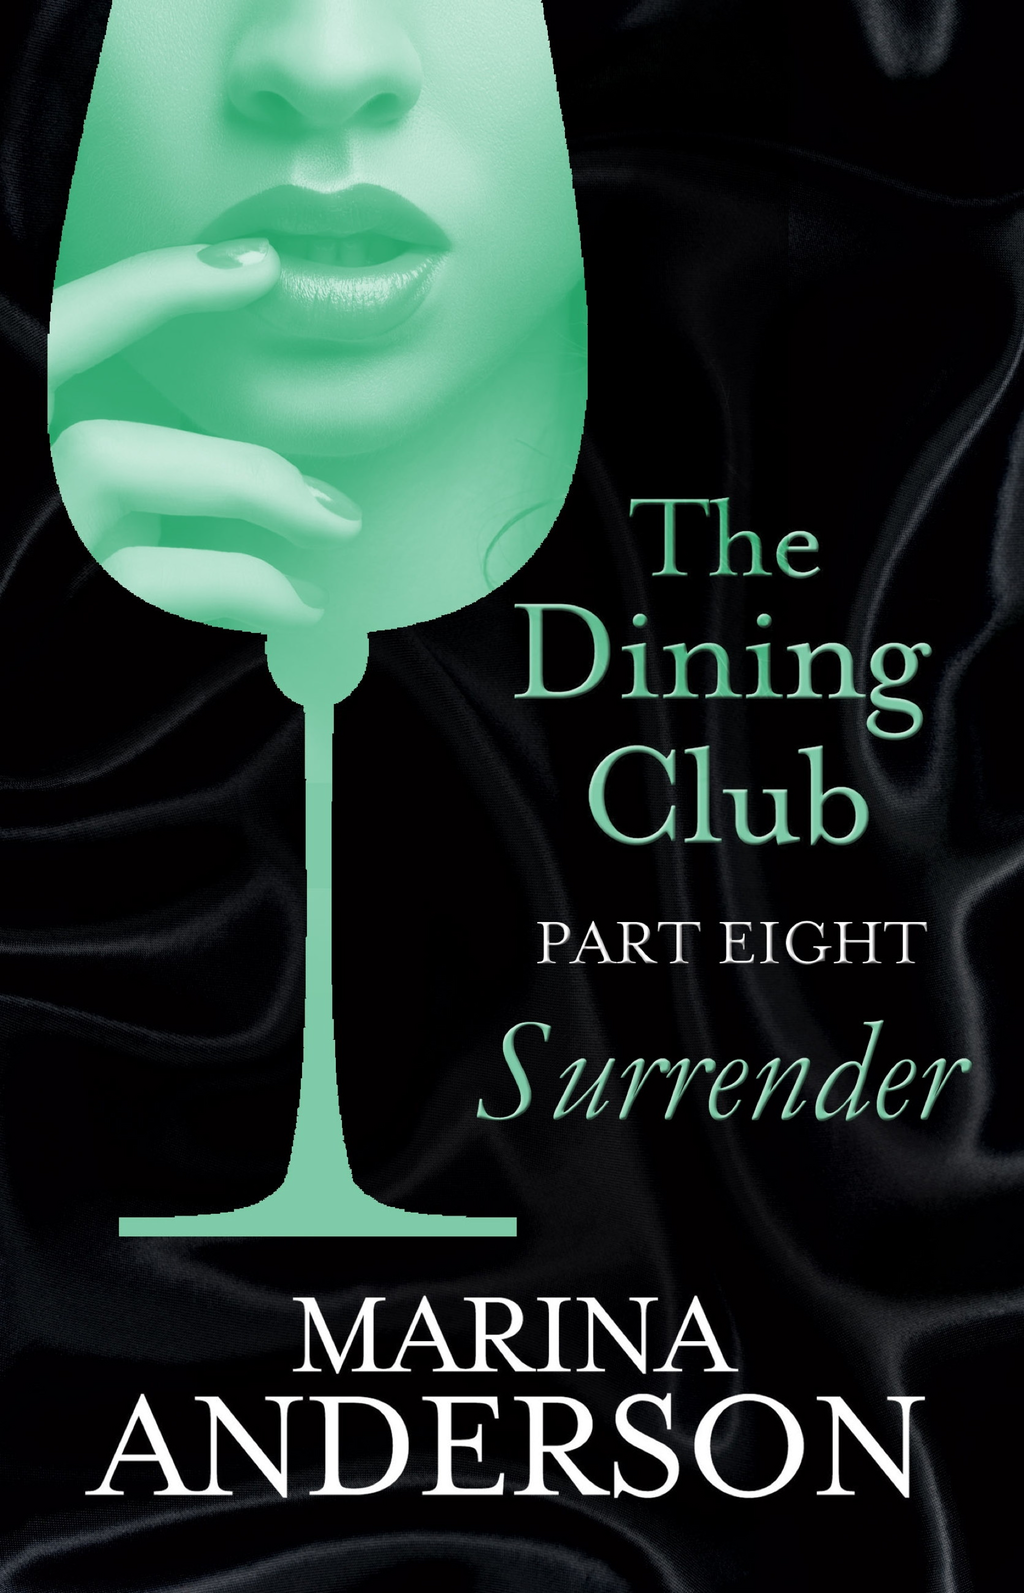 The Dining Club: Part 8